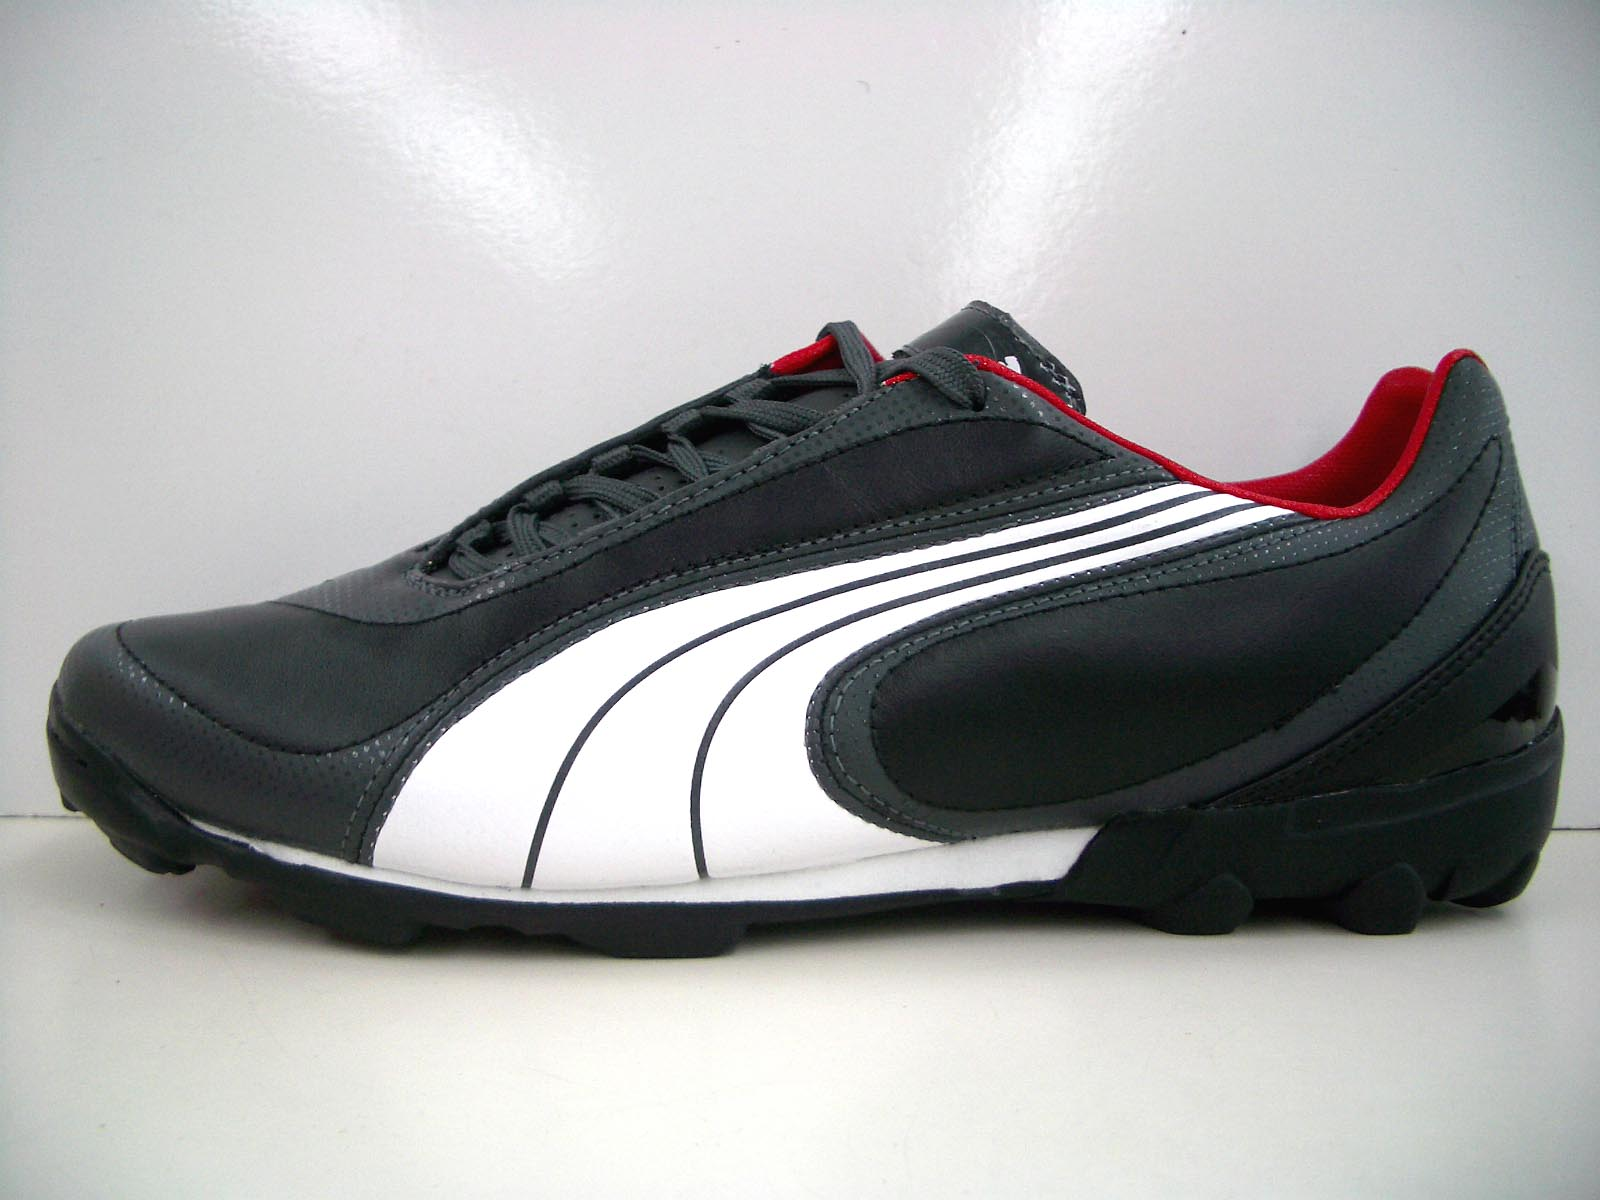 chaussures de séparation aae83 2a75c PUMA v3.08TT black and white ash